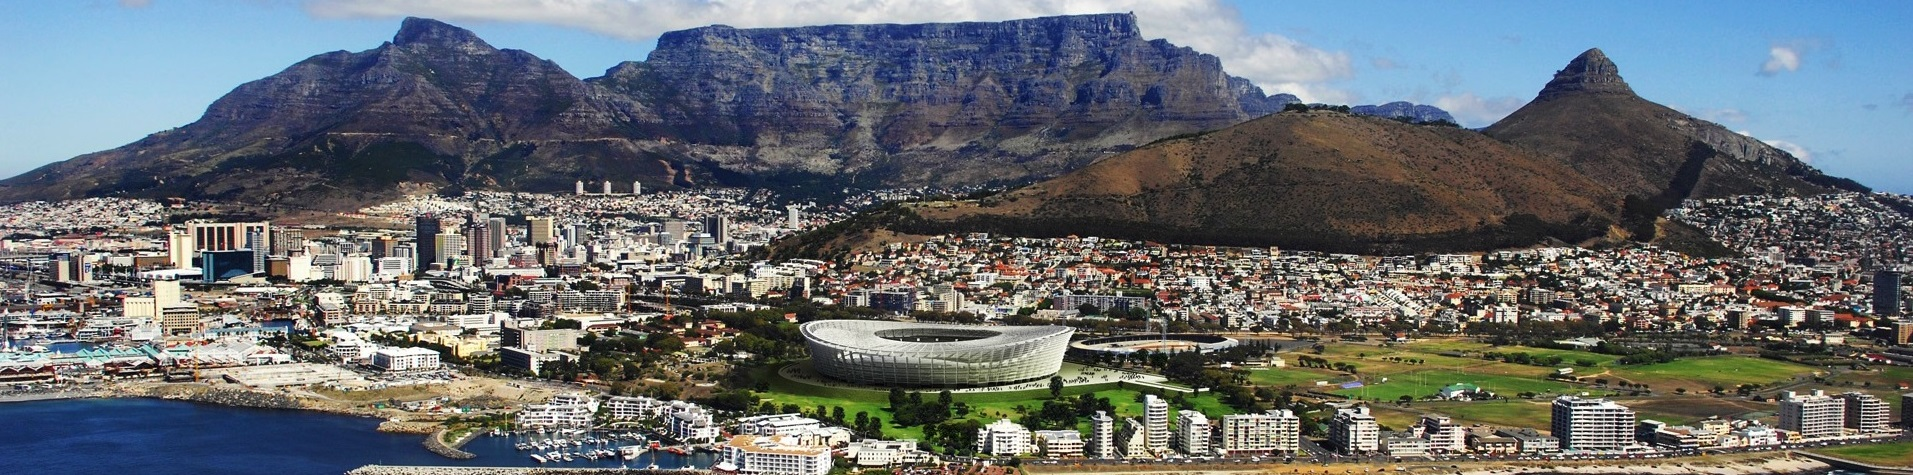 cape town_scenery_banner3